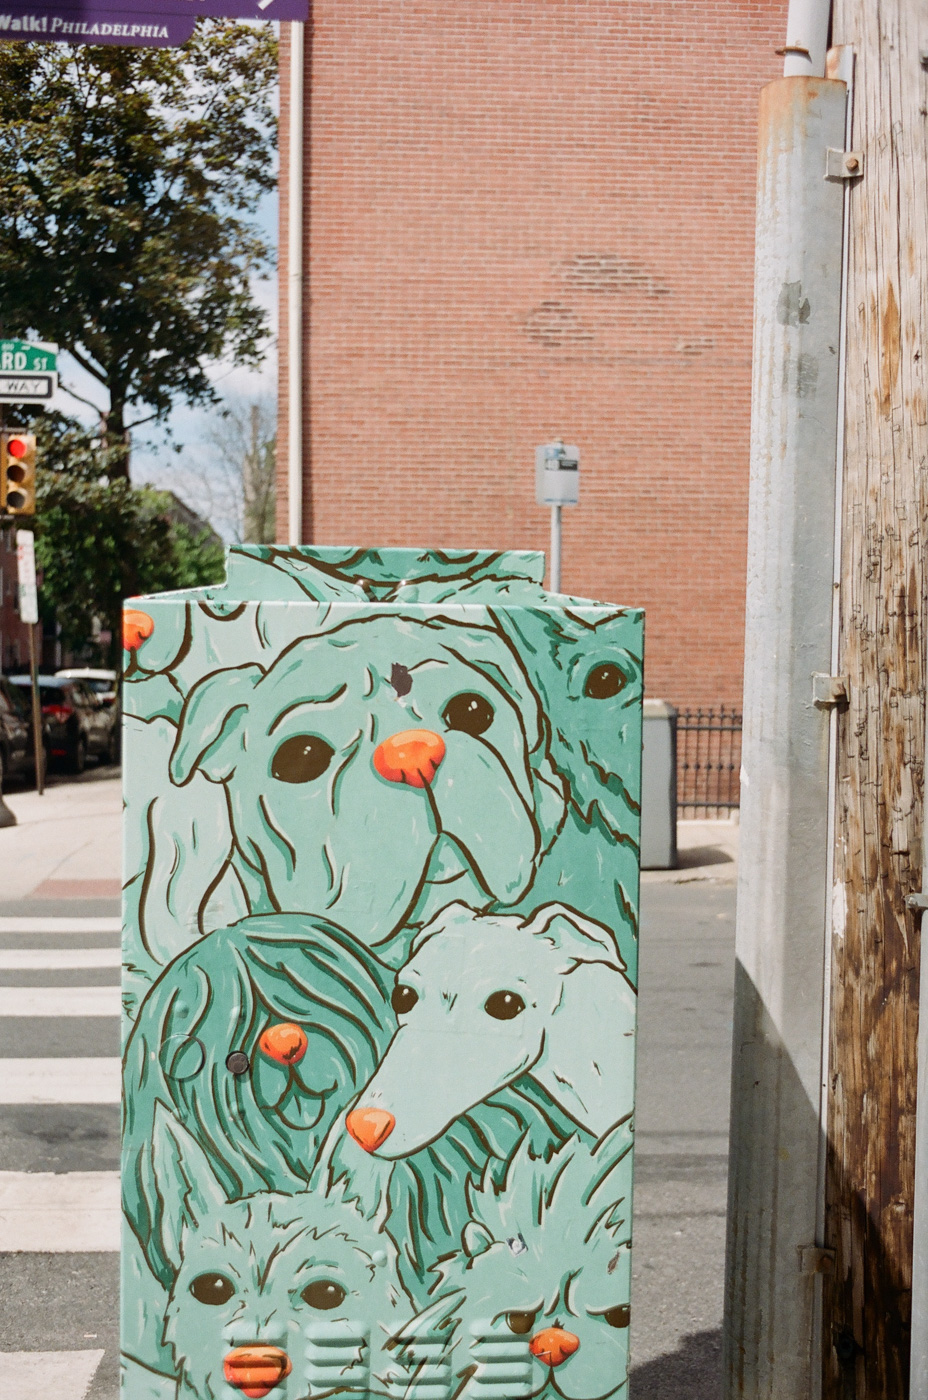 Utility Box with Dogs